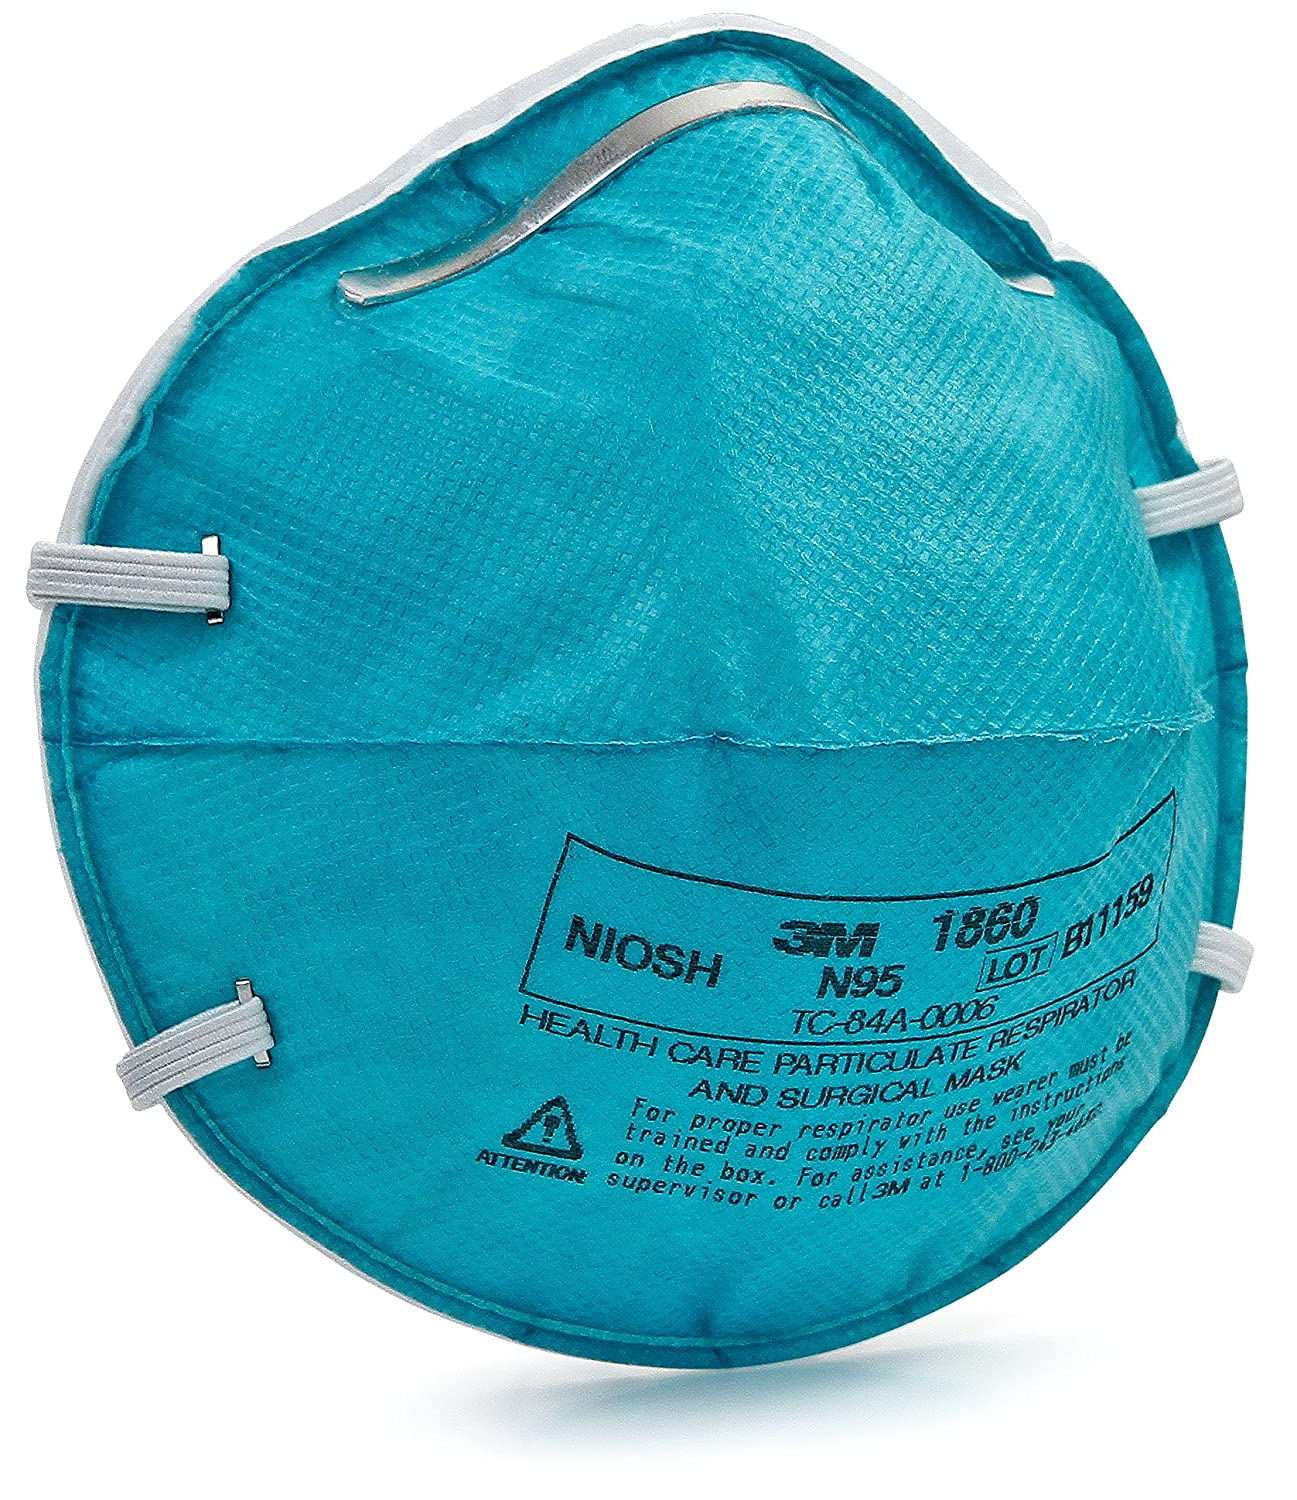 N95 Respirator Amazon in Mask 3m Count 1860 Surgical And 20